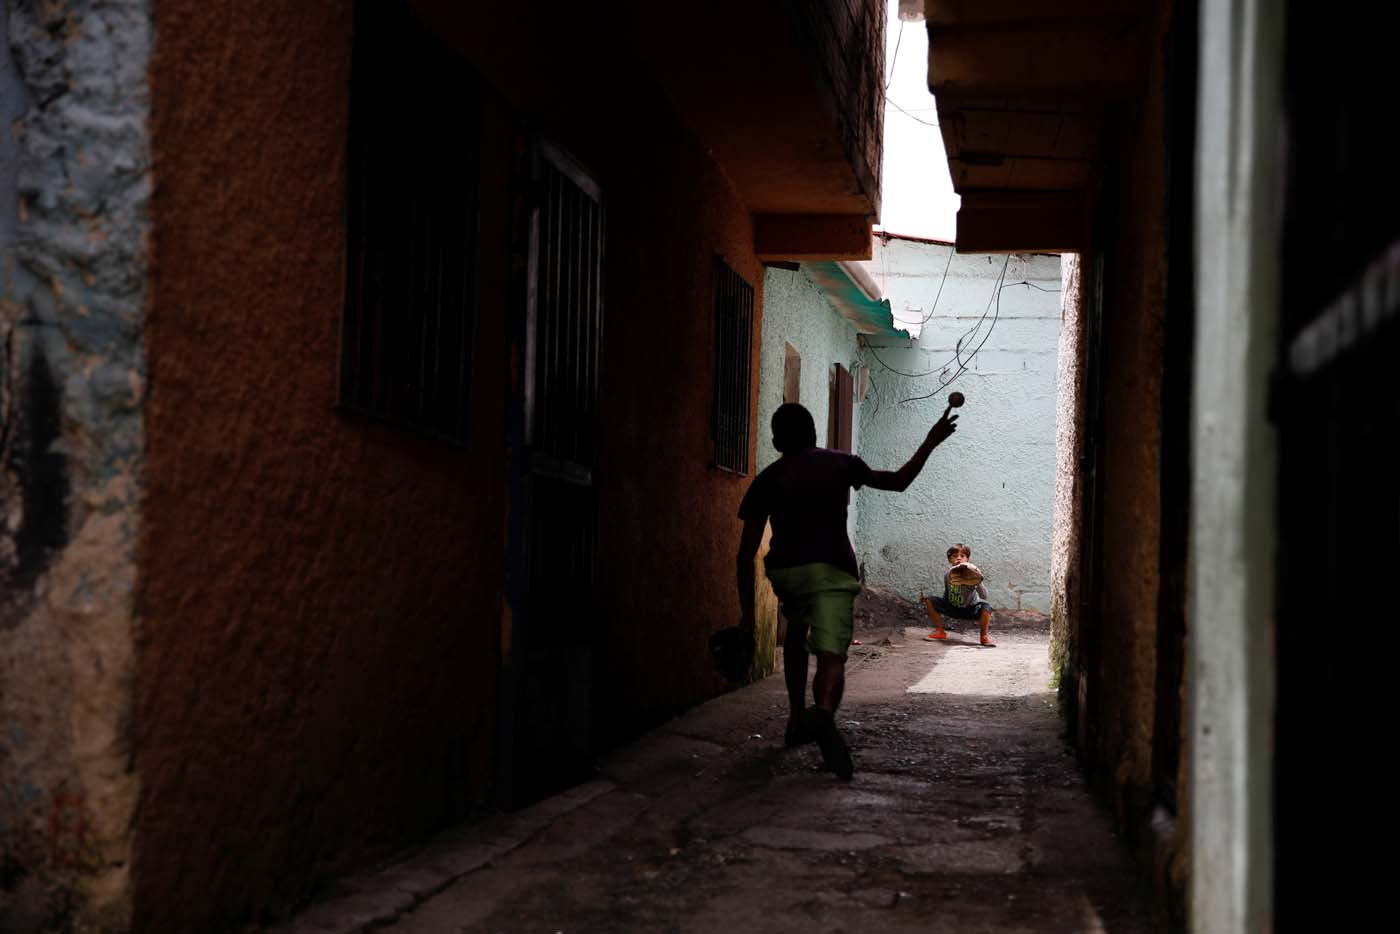 Aiberth Tovar (R), 7, practices baseball in front of his house in Caracas, Venezuela August 30, 2017. Picture taken August 30, 2017. REUTERS/Carlos Garcia Rawlins